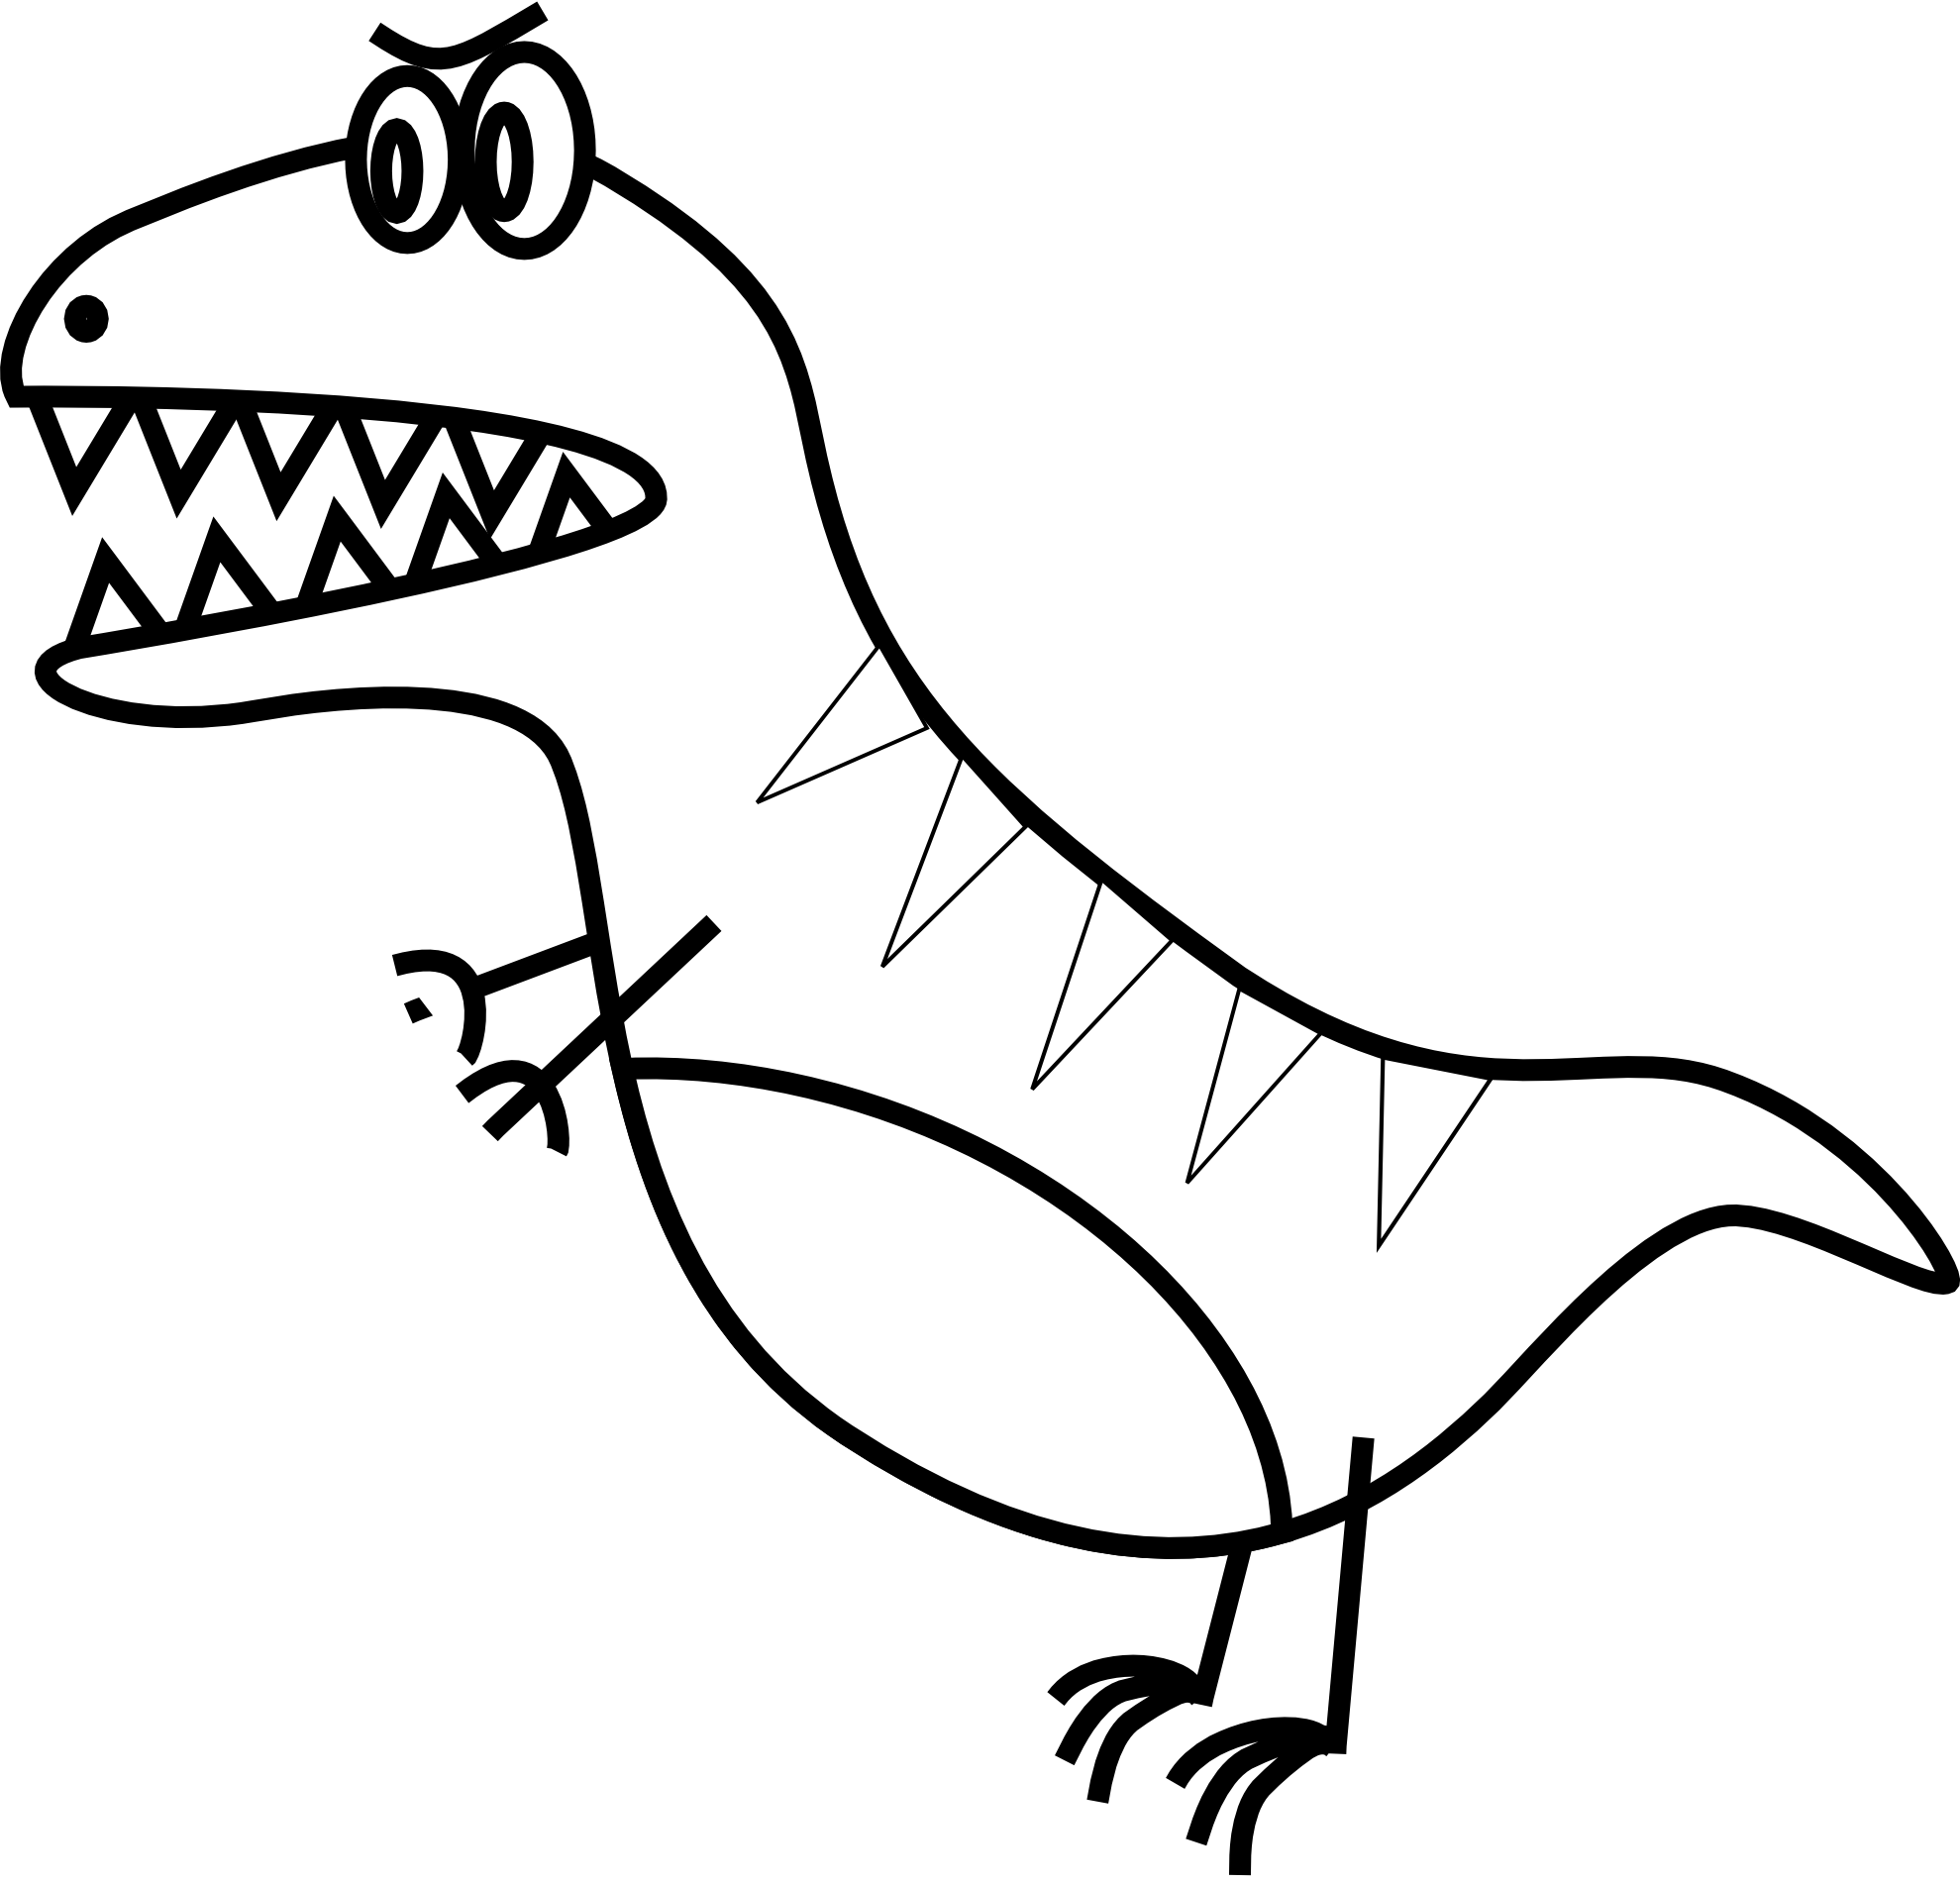 Black Line Drawings Of Animals : Simple line art drawings clipart best